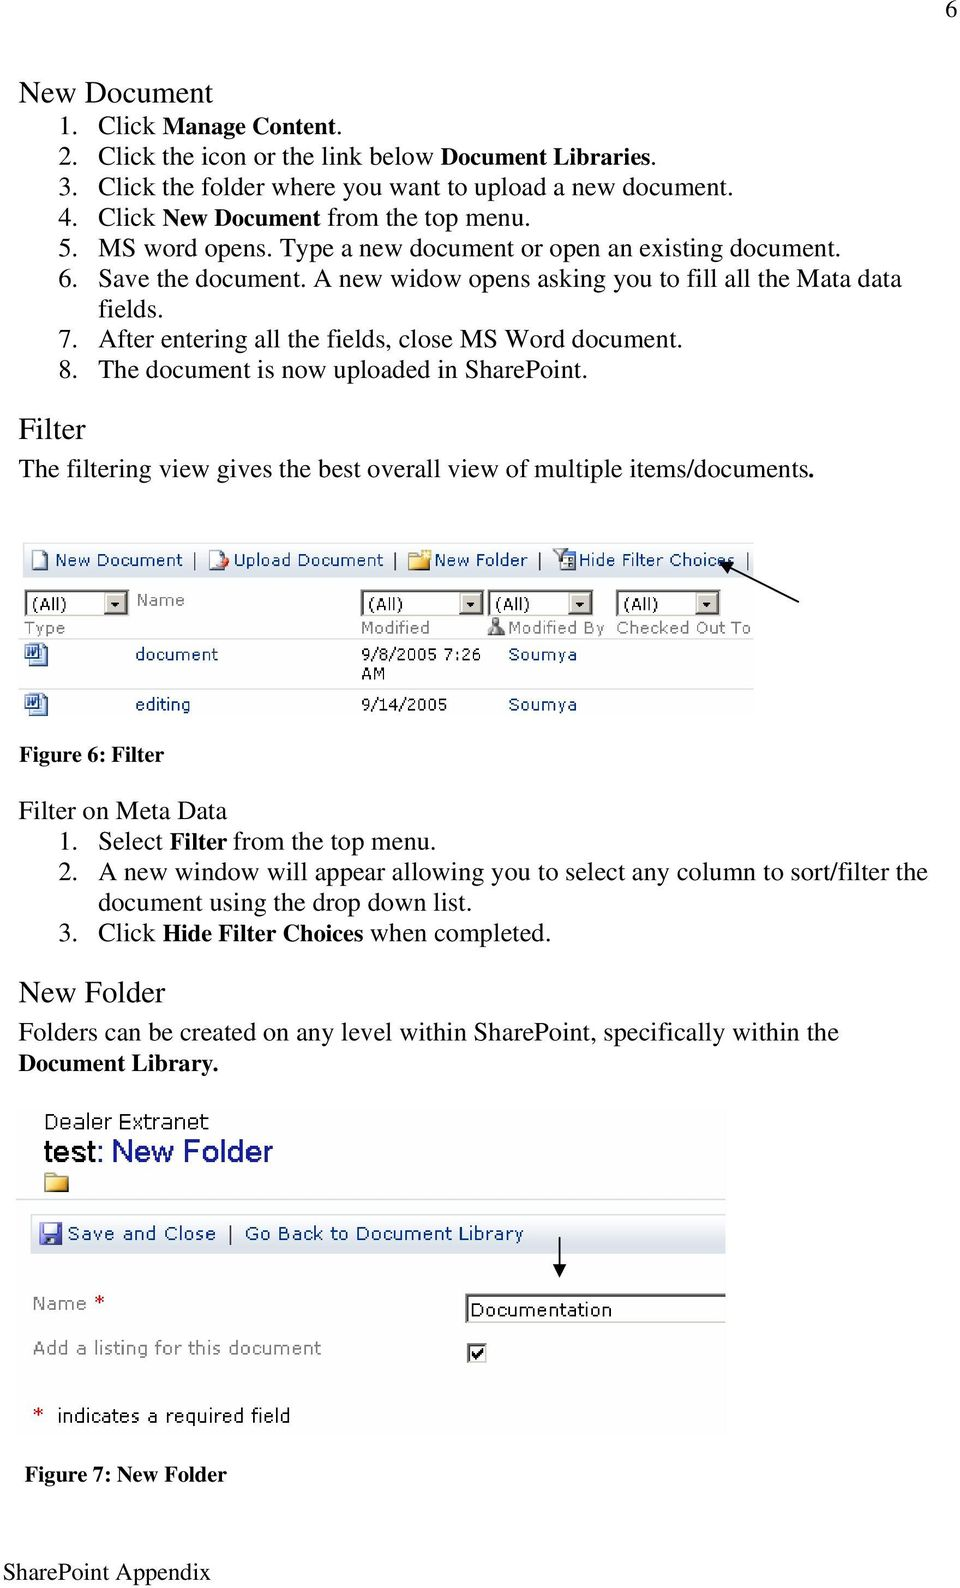 After entering all the fields, close MS Word document. 8. The document is now uploaded in SharePoint. Filter The filtering view gives the best overall view of multiple items/documents.